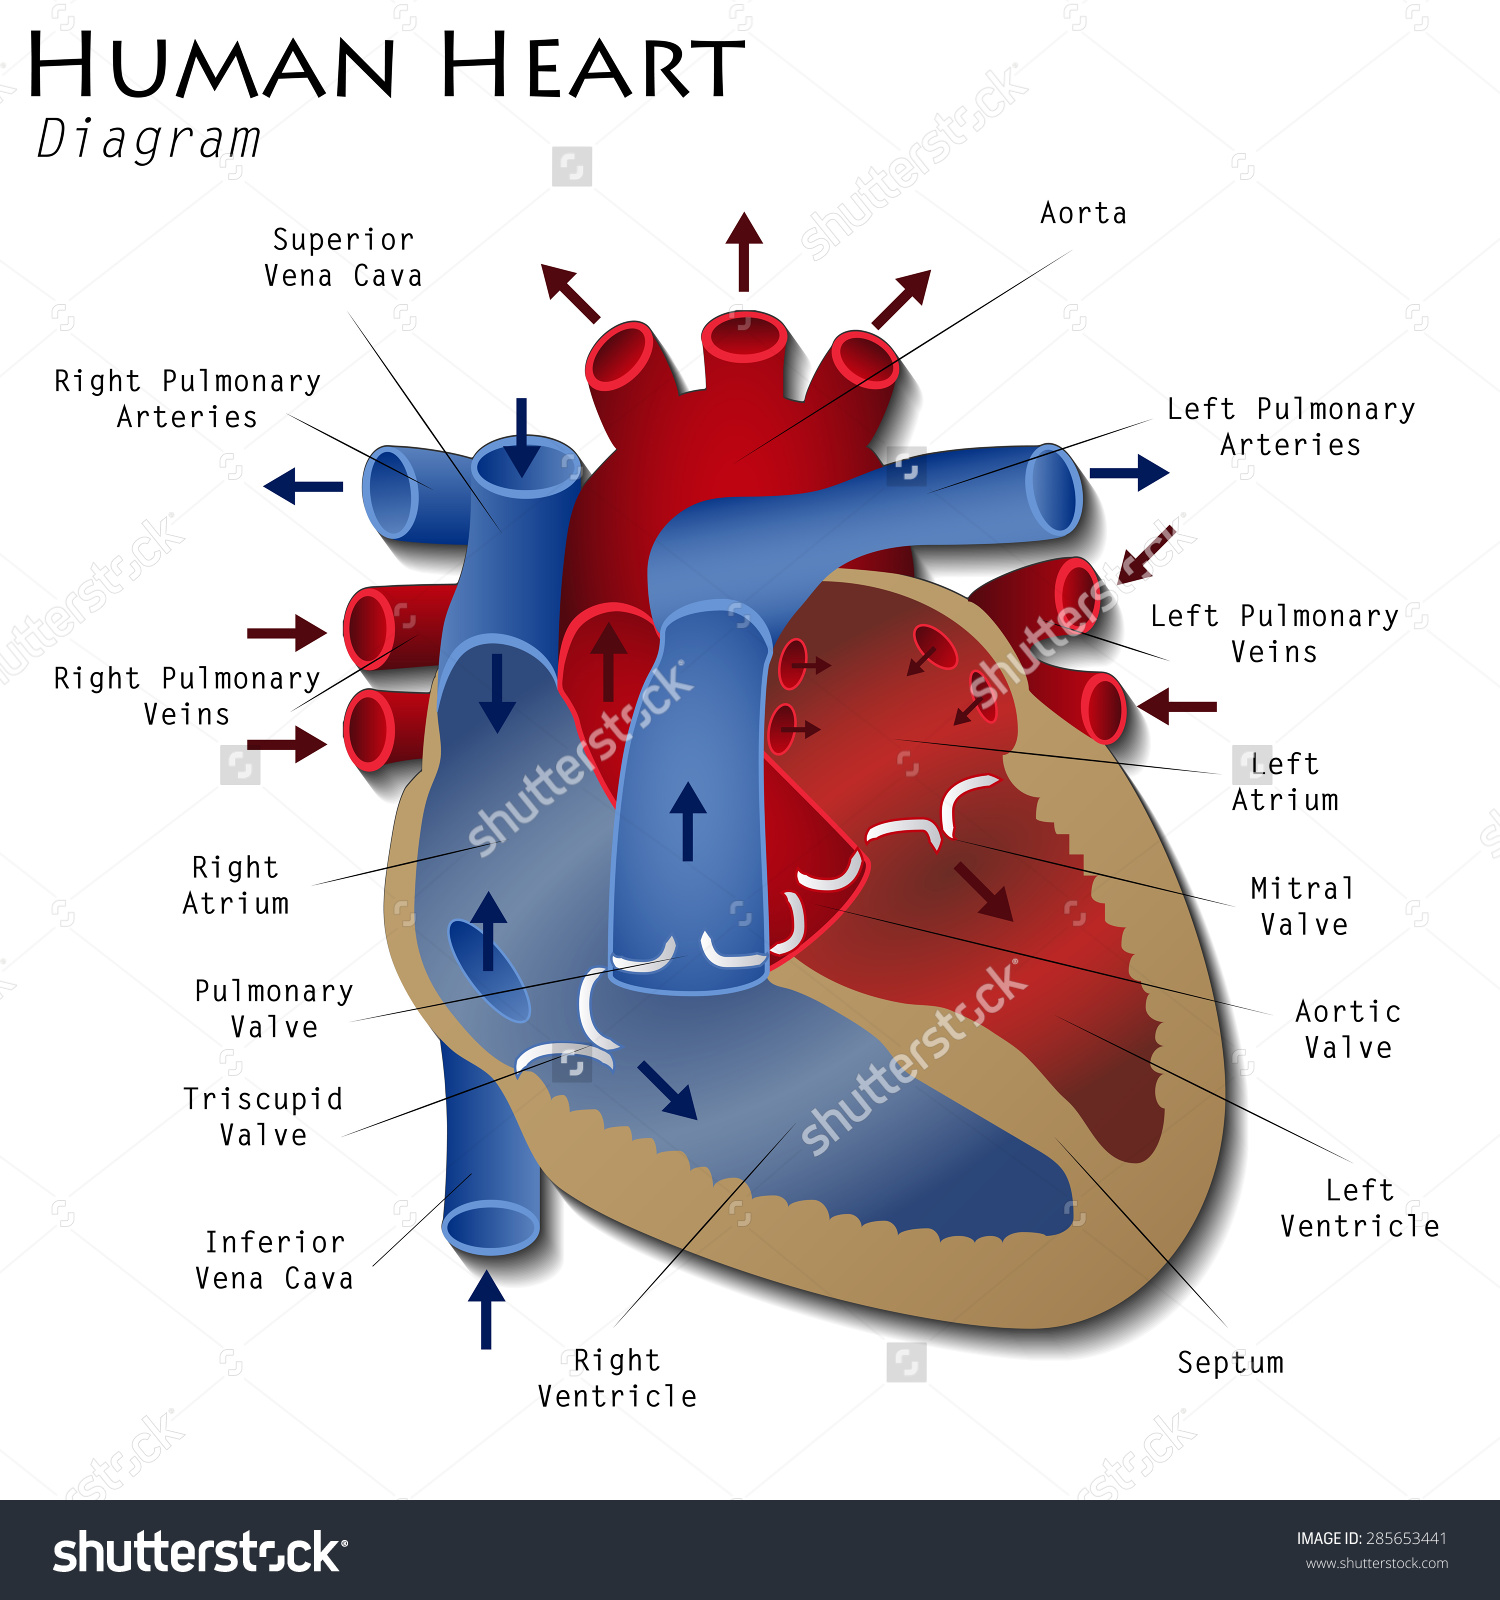 Makes for a first rate heart diagram what makes for a first rate heart diagram ccuart Image collections